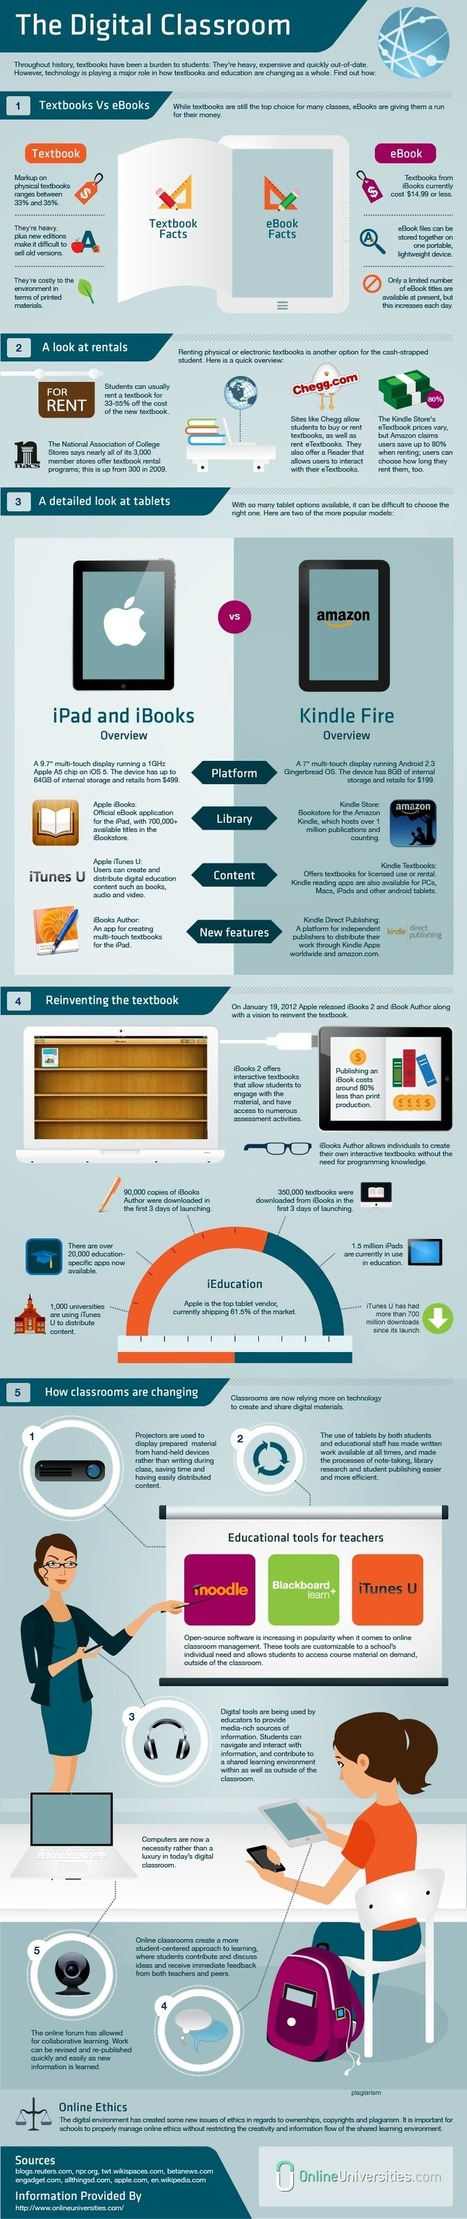 The Elements Of A Digital Classroom [Infographic] | ENT | Scoop.it